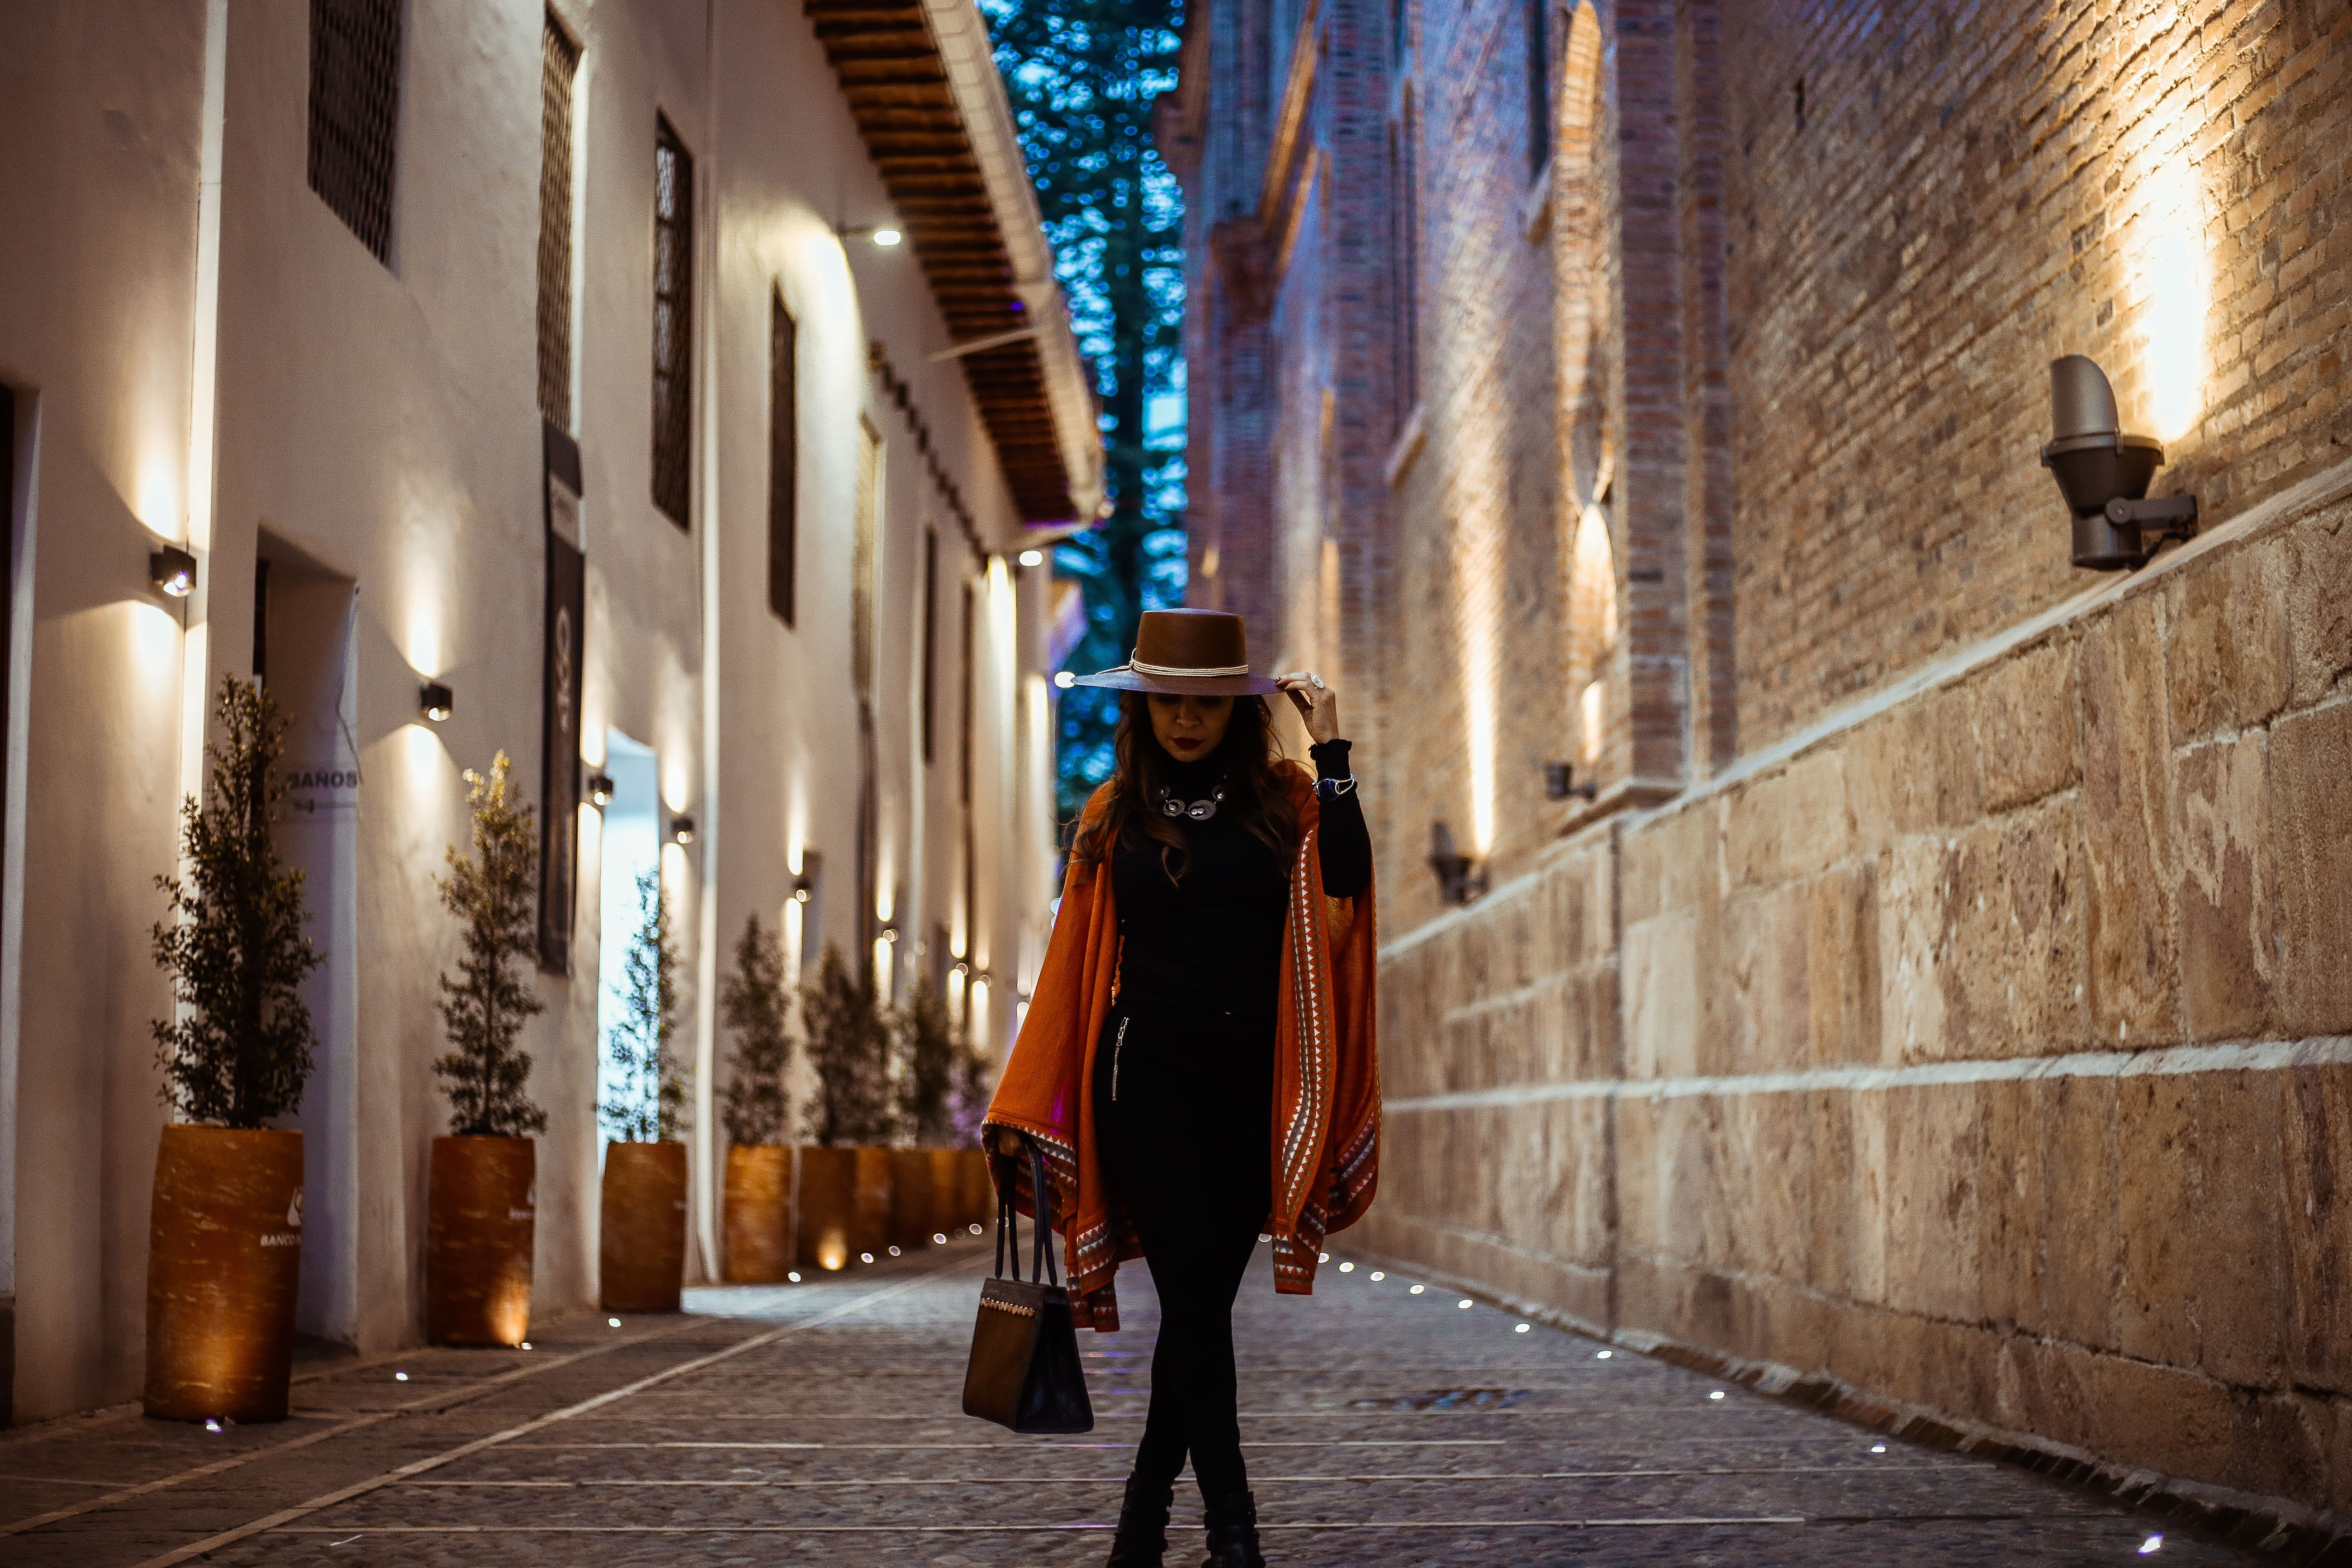 Woman standing in cobblestone alley in black dress and brown hat.